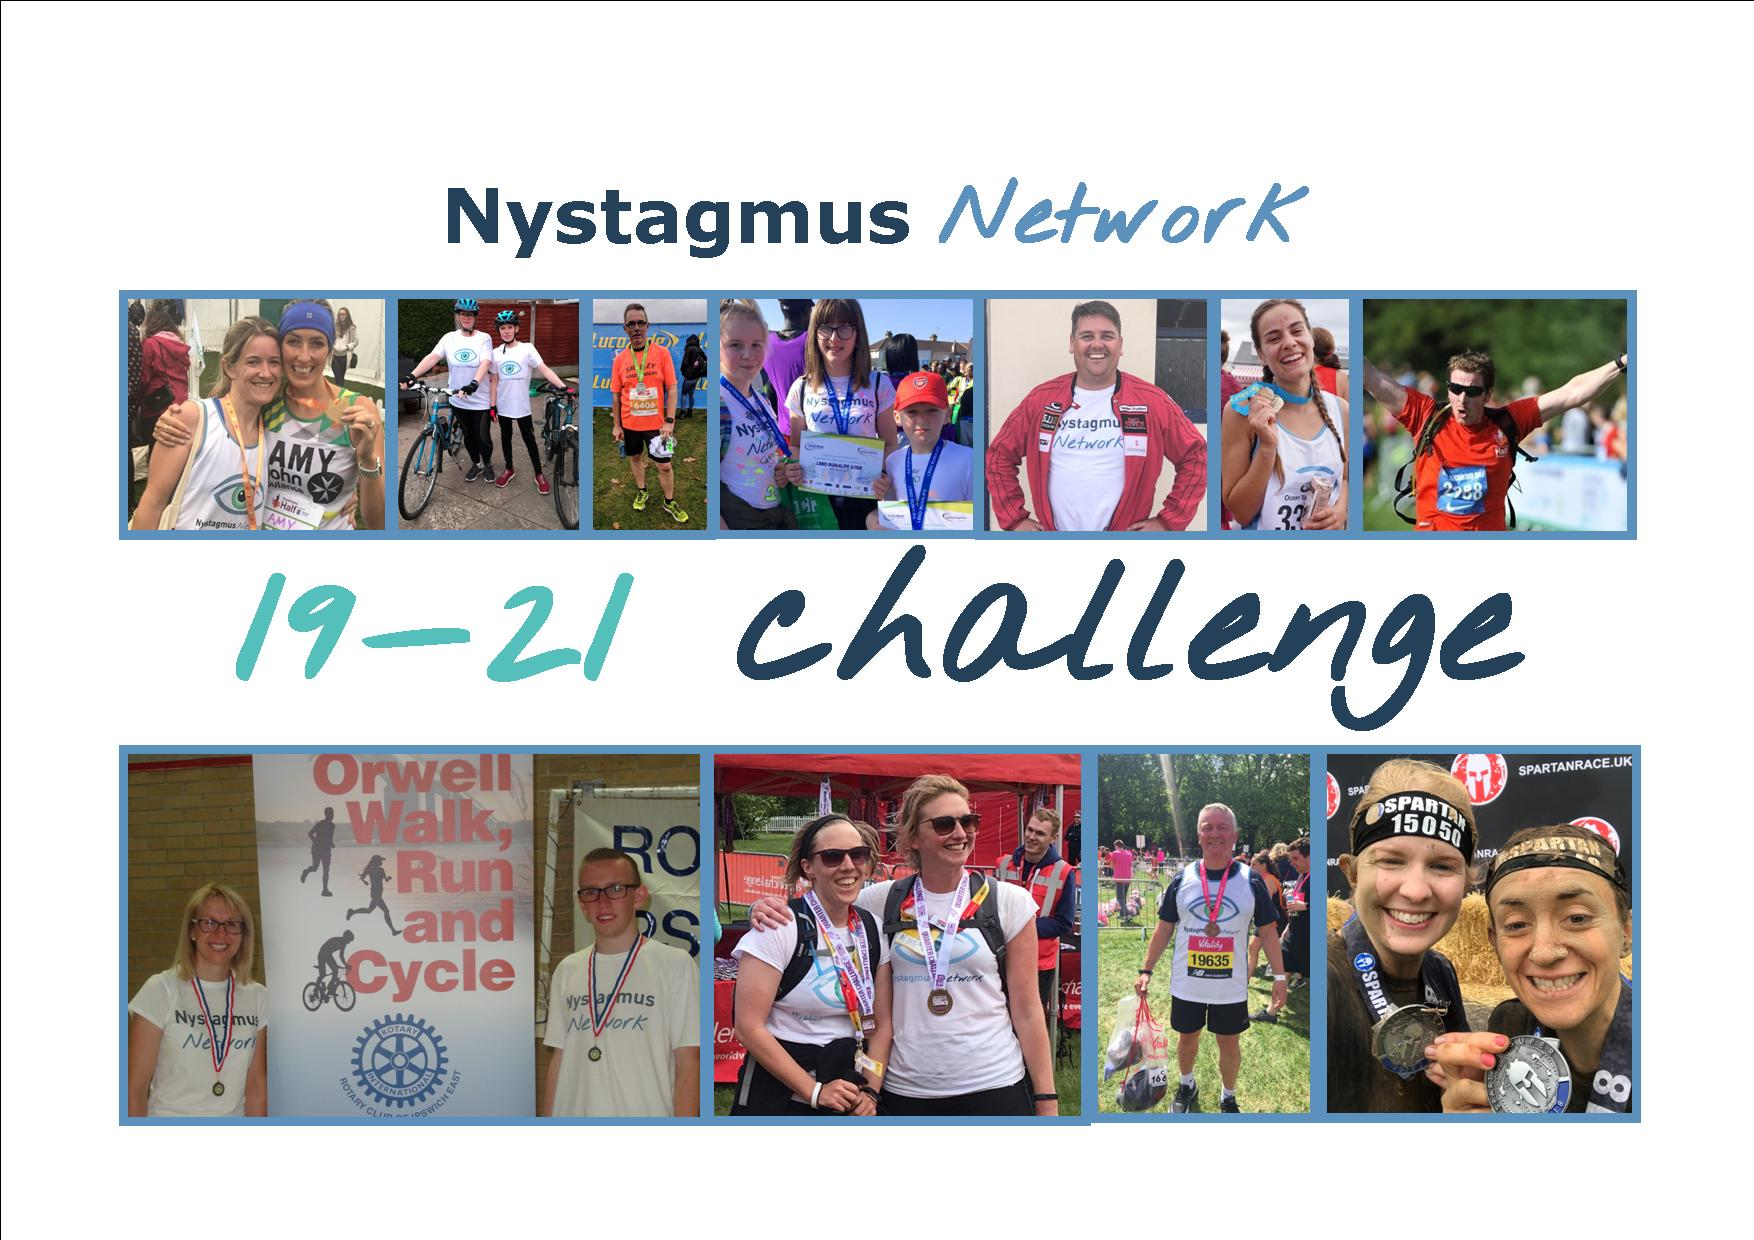 12 thumbnail images of people taking part in running, walking or cycling challenes and the words Nystagmus Network 19 - 21 challenge